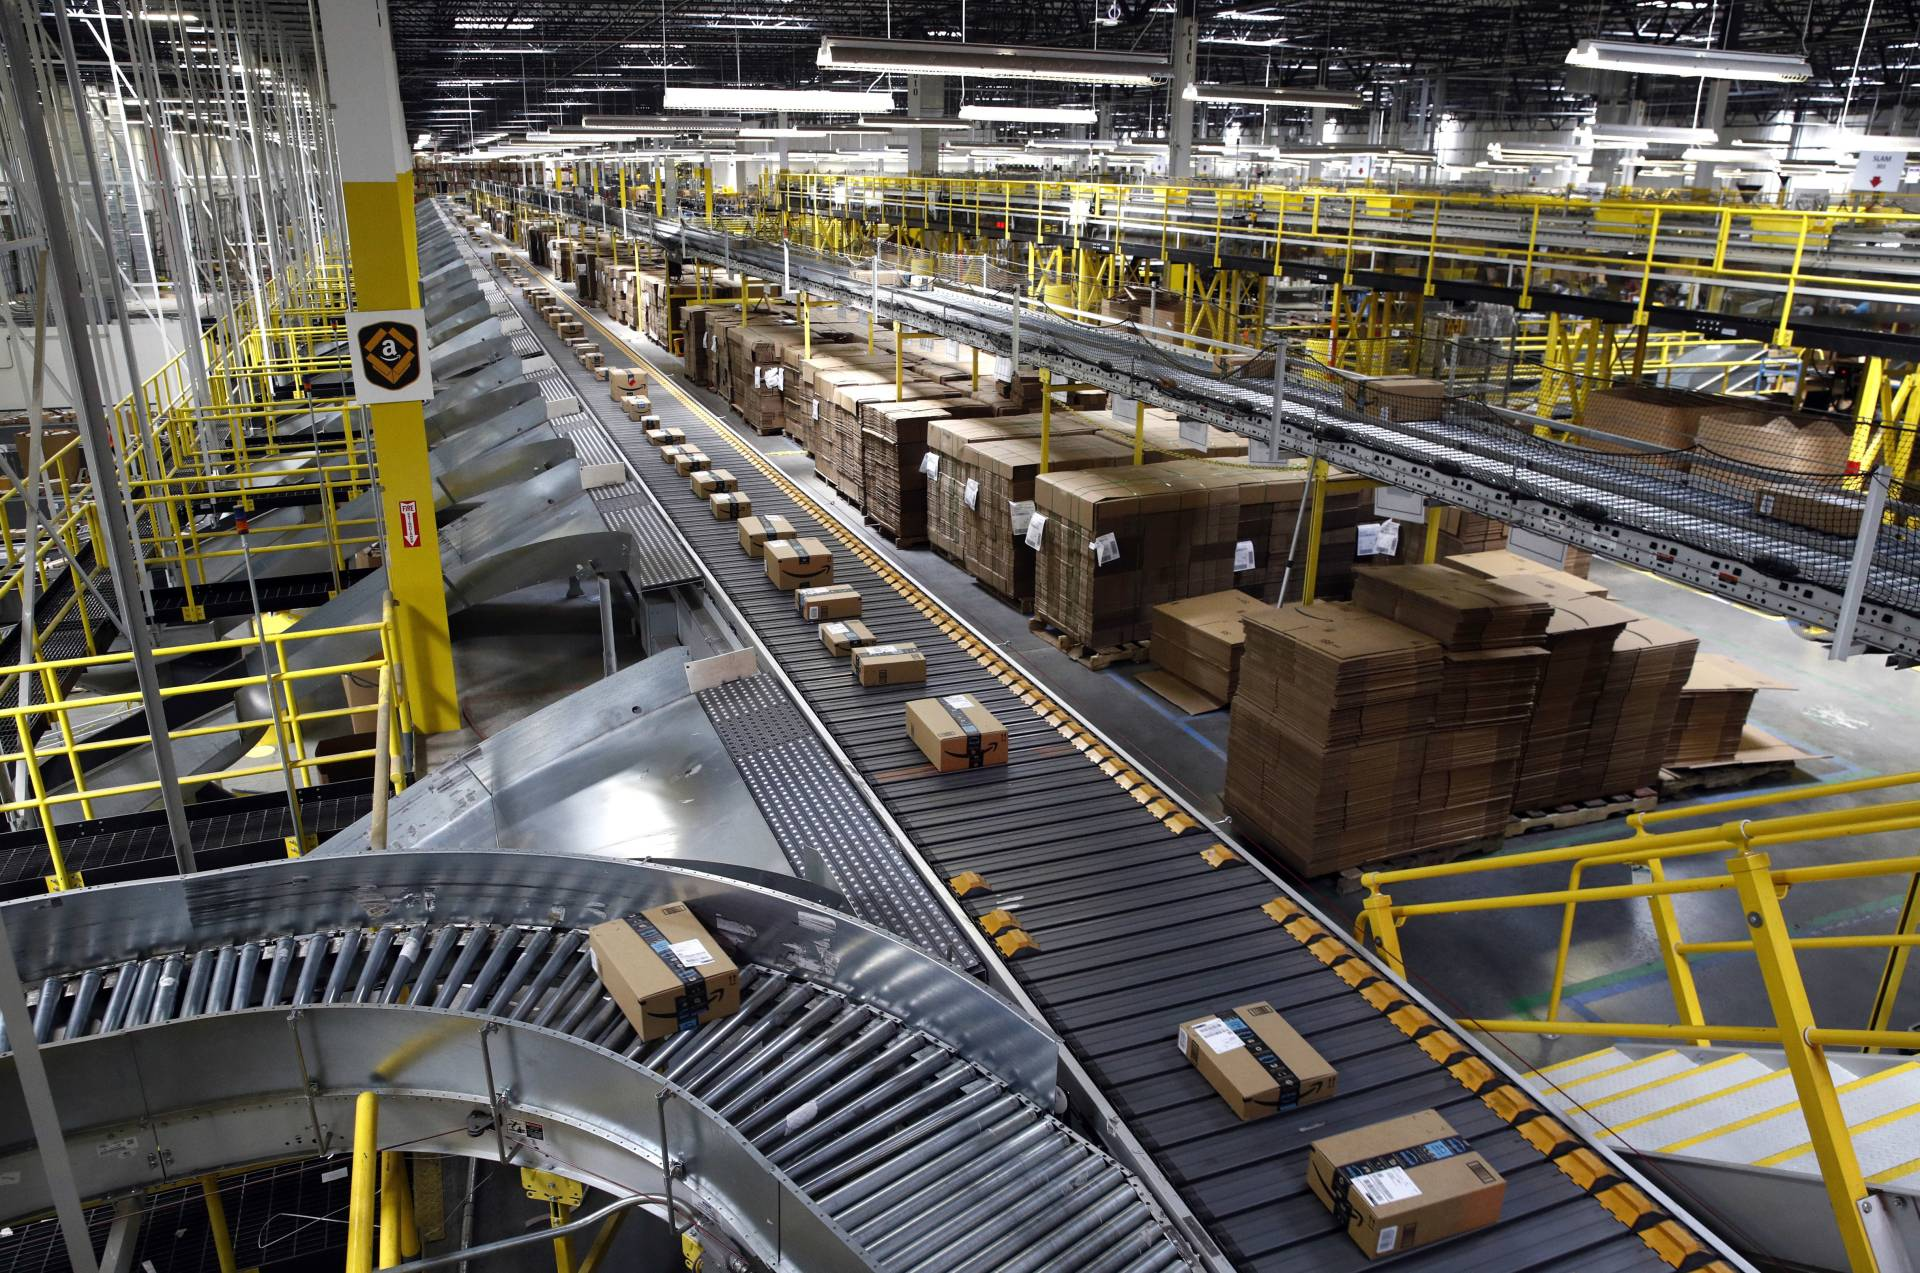 Many eyes will be on Amazon this holiday season and whether it will keep its delivery promises.